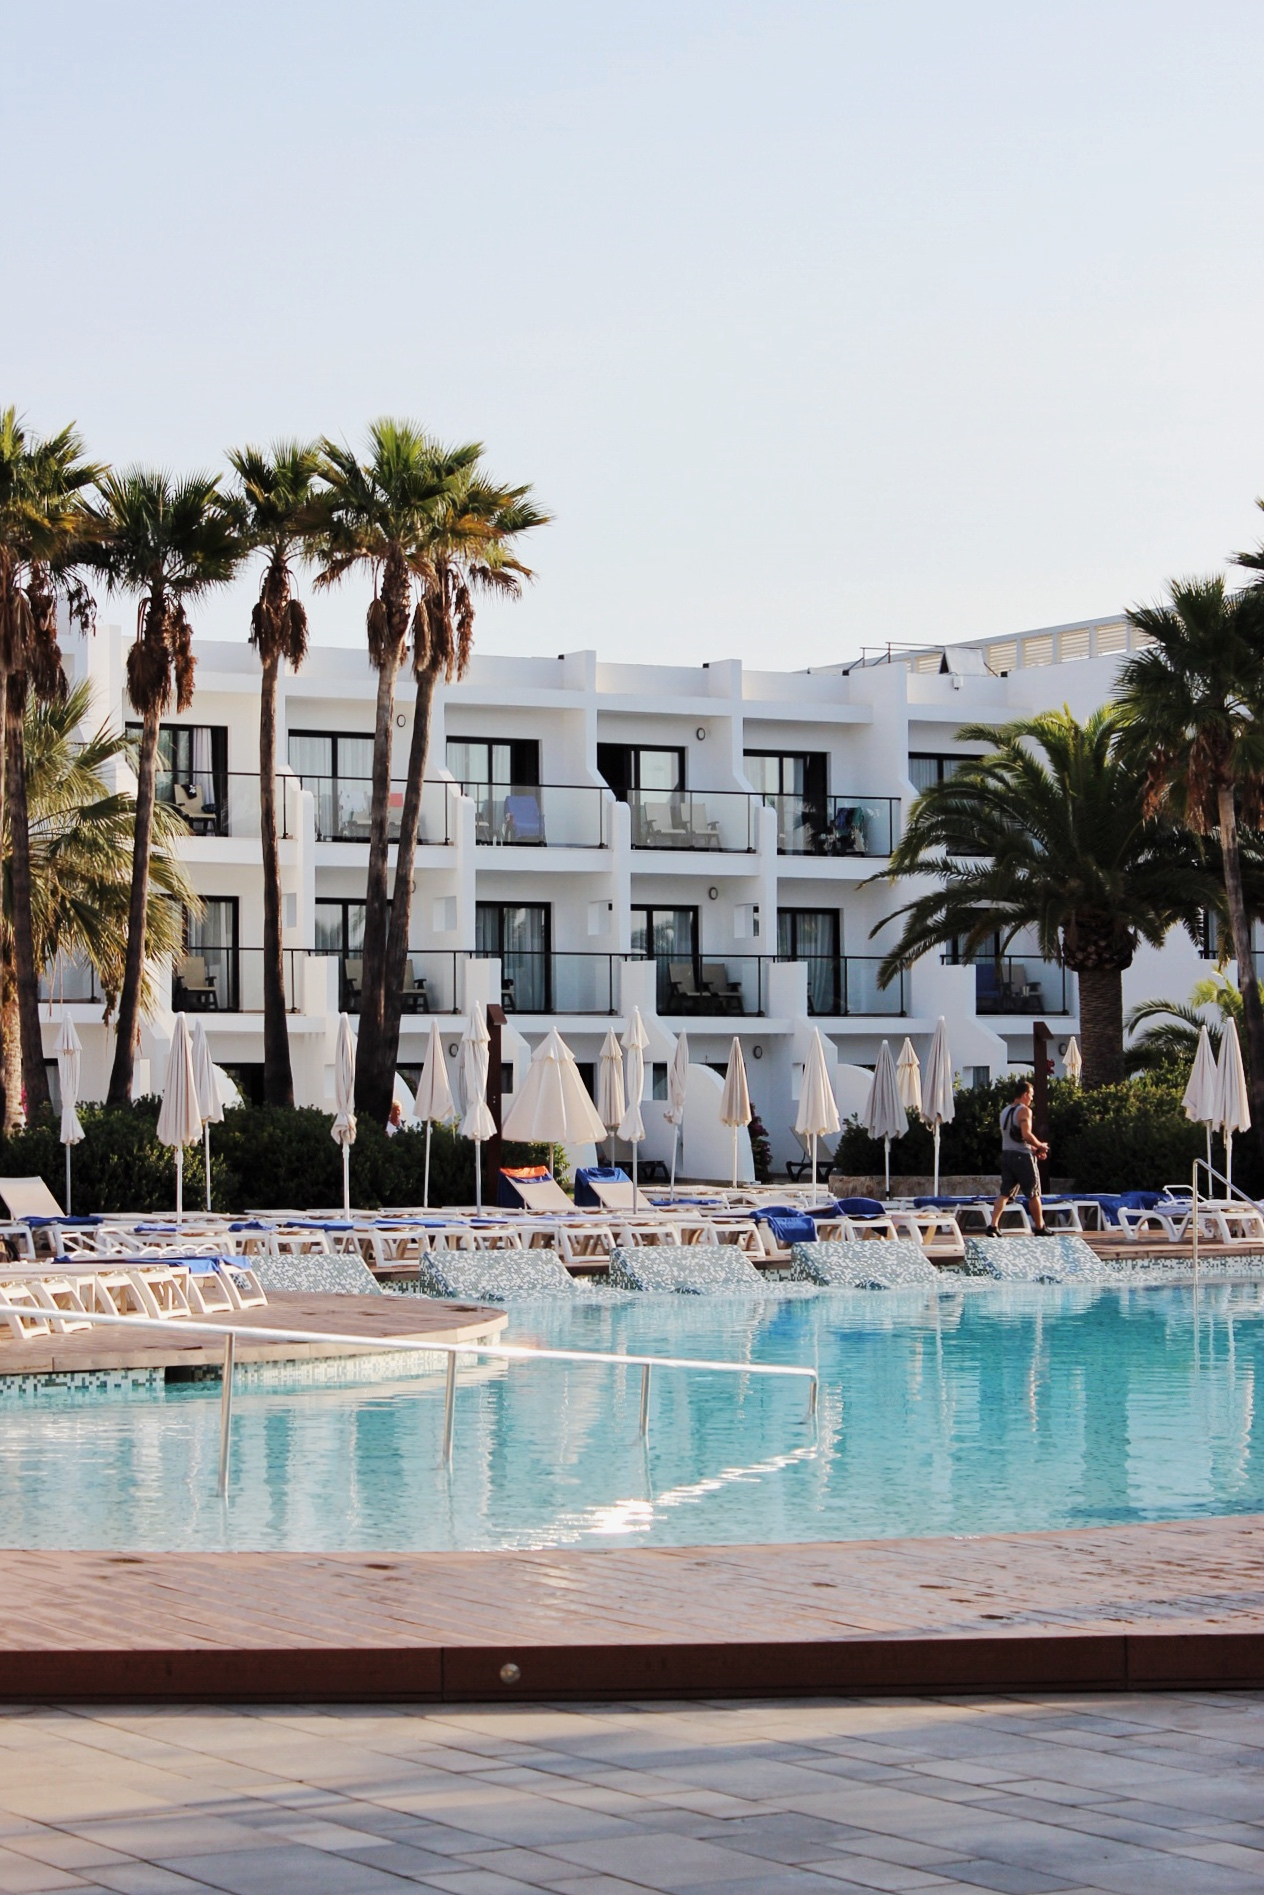 Ibiza Grand Palladium White Island Resort Playa Den Bossa